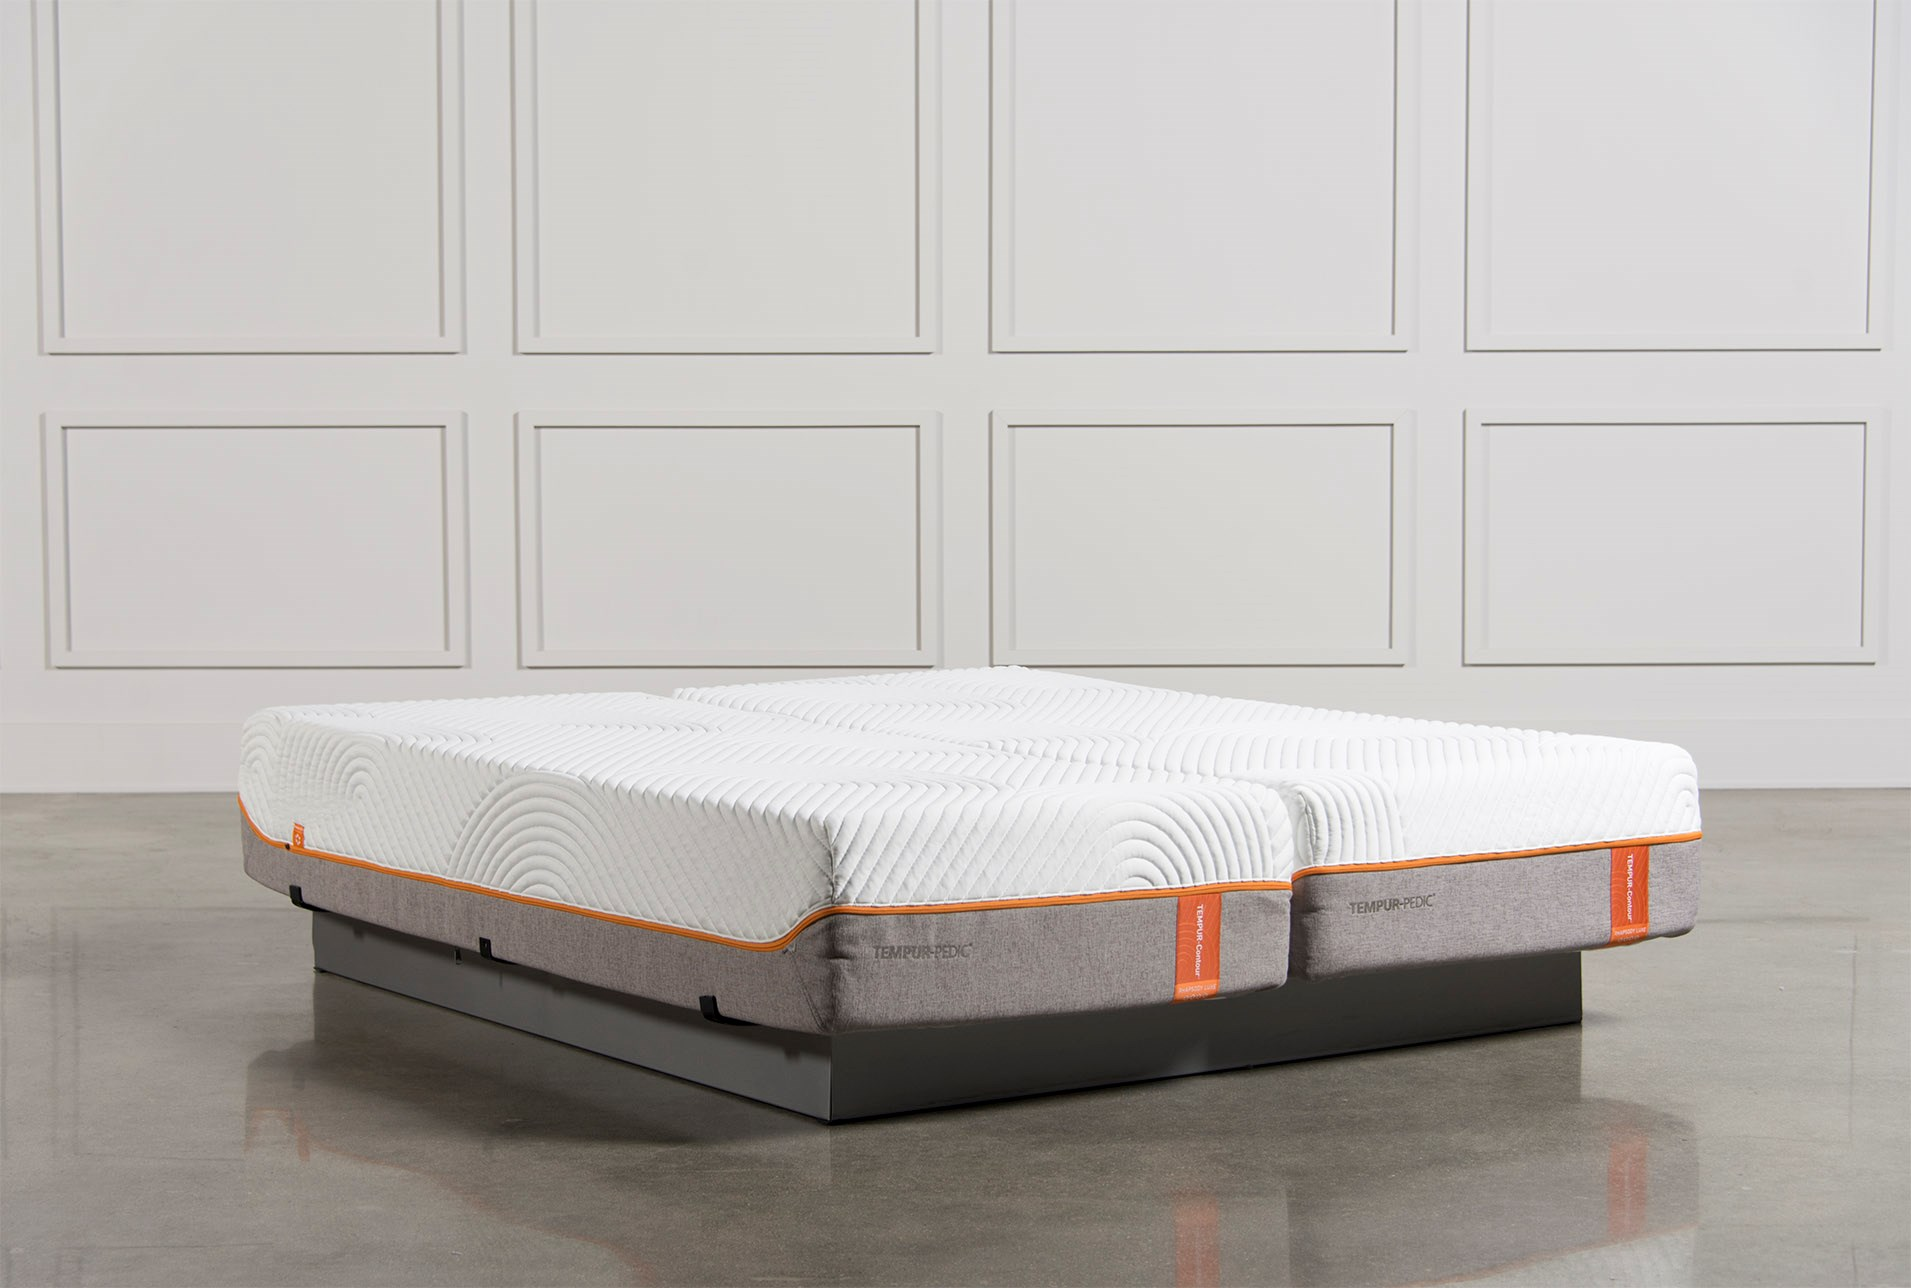 Tempur Pedic Contour Rhapsody Luxe Cal King Split Mattress Set